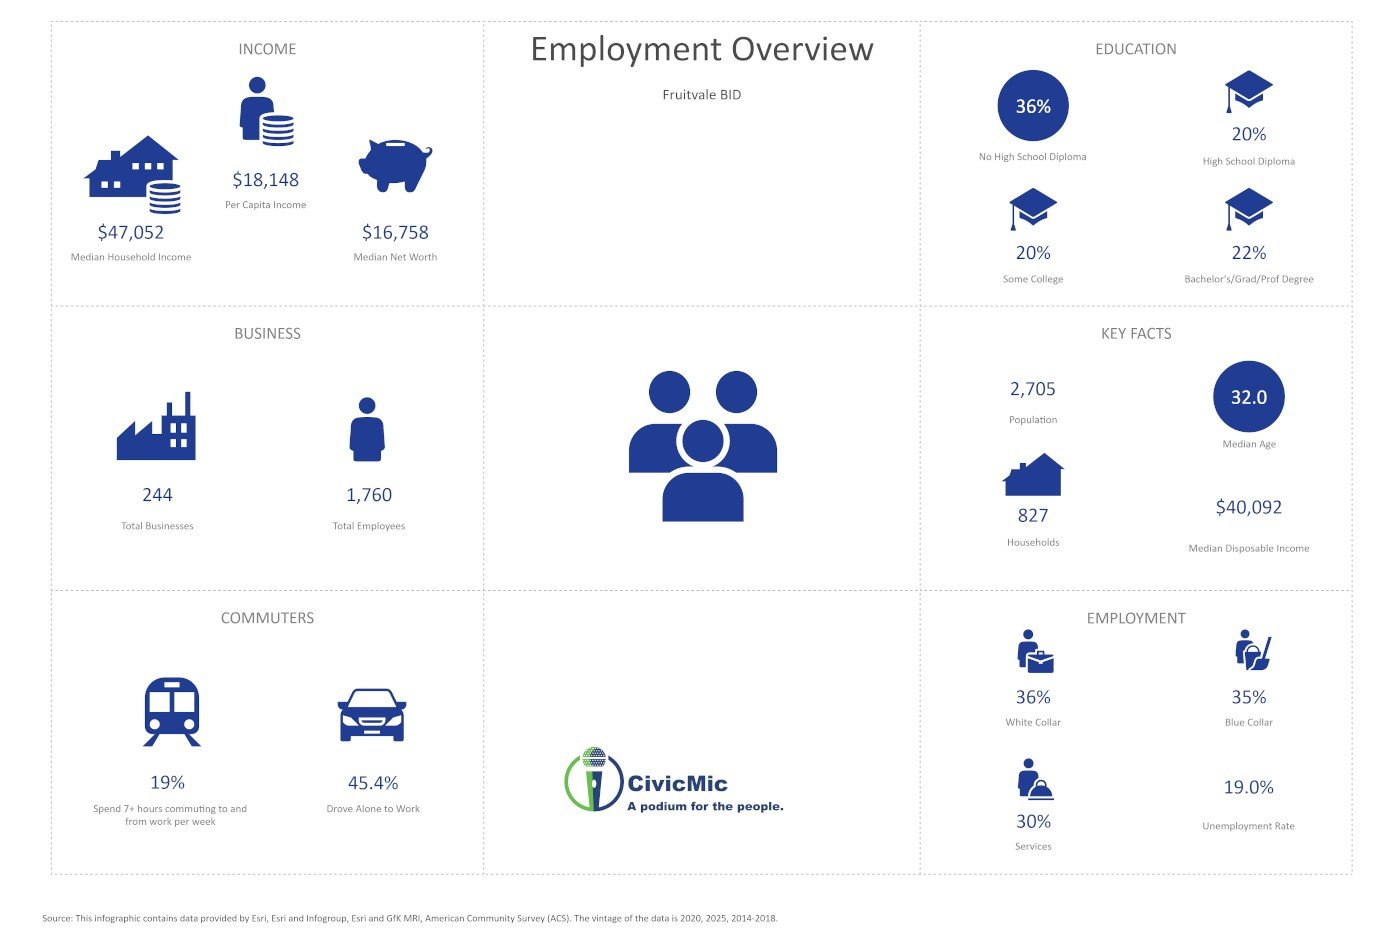 Fruitvale BID Employment Overview by CivicMic